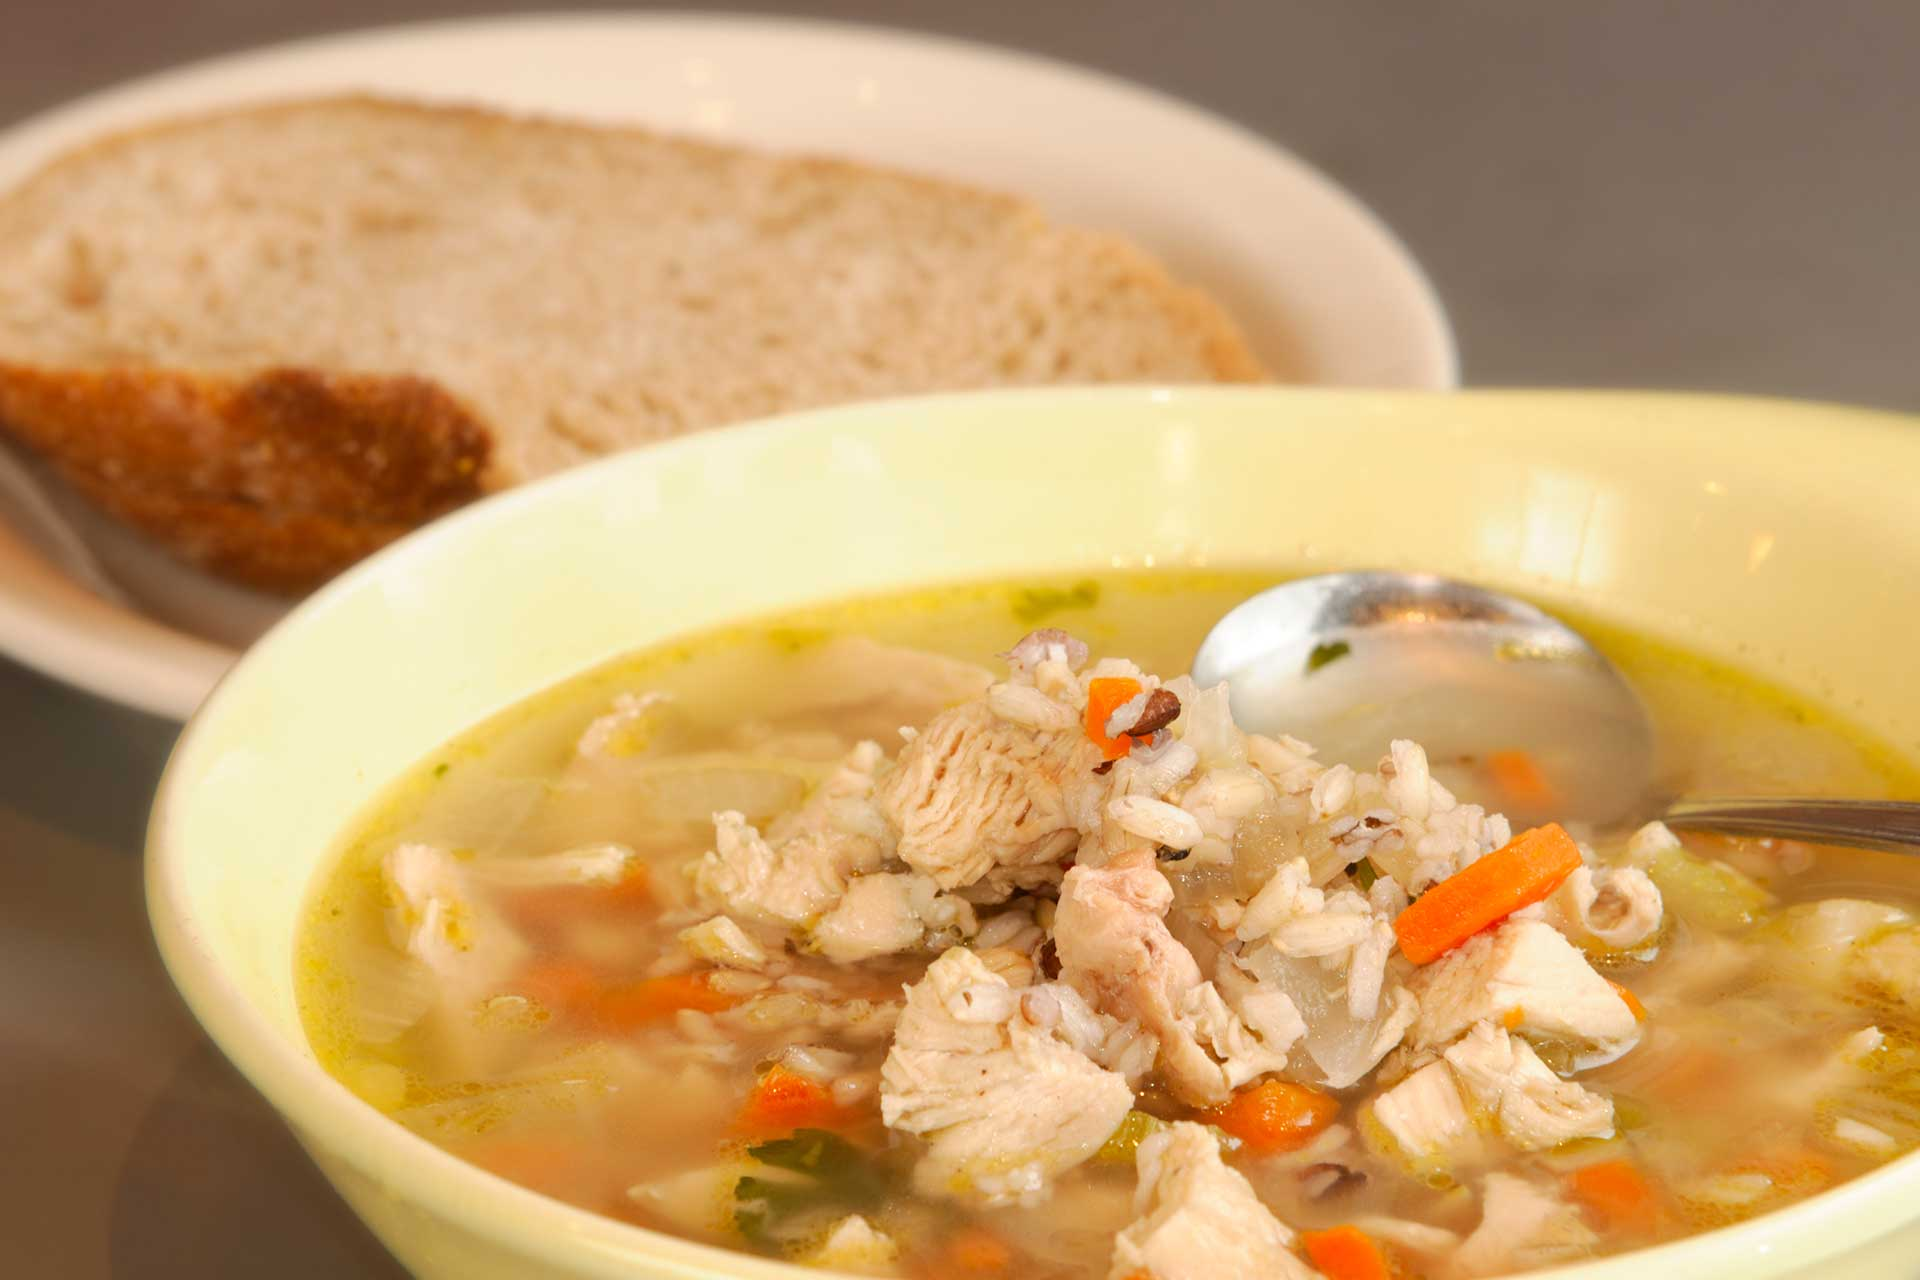 Photo of chicken soup bowl